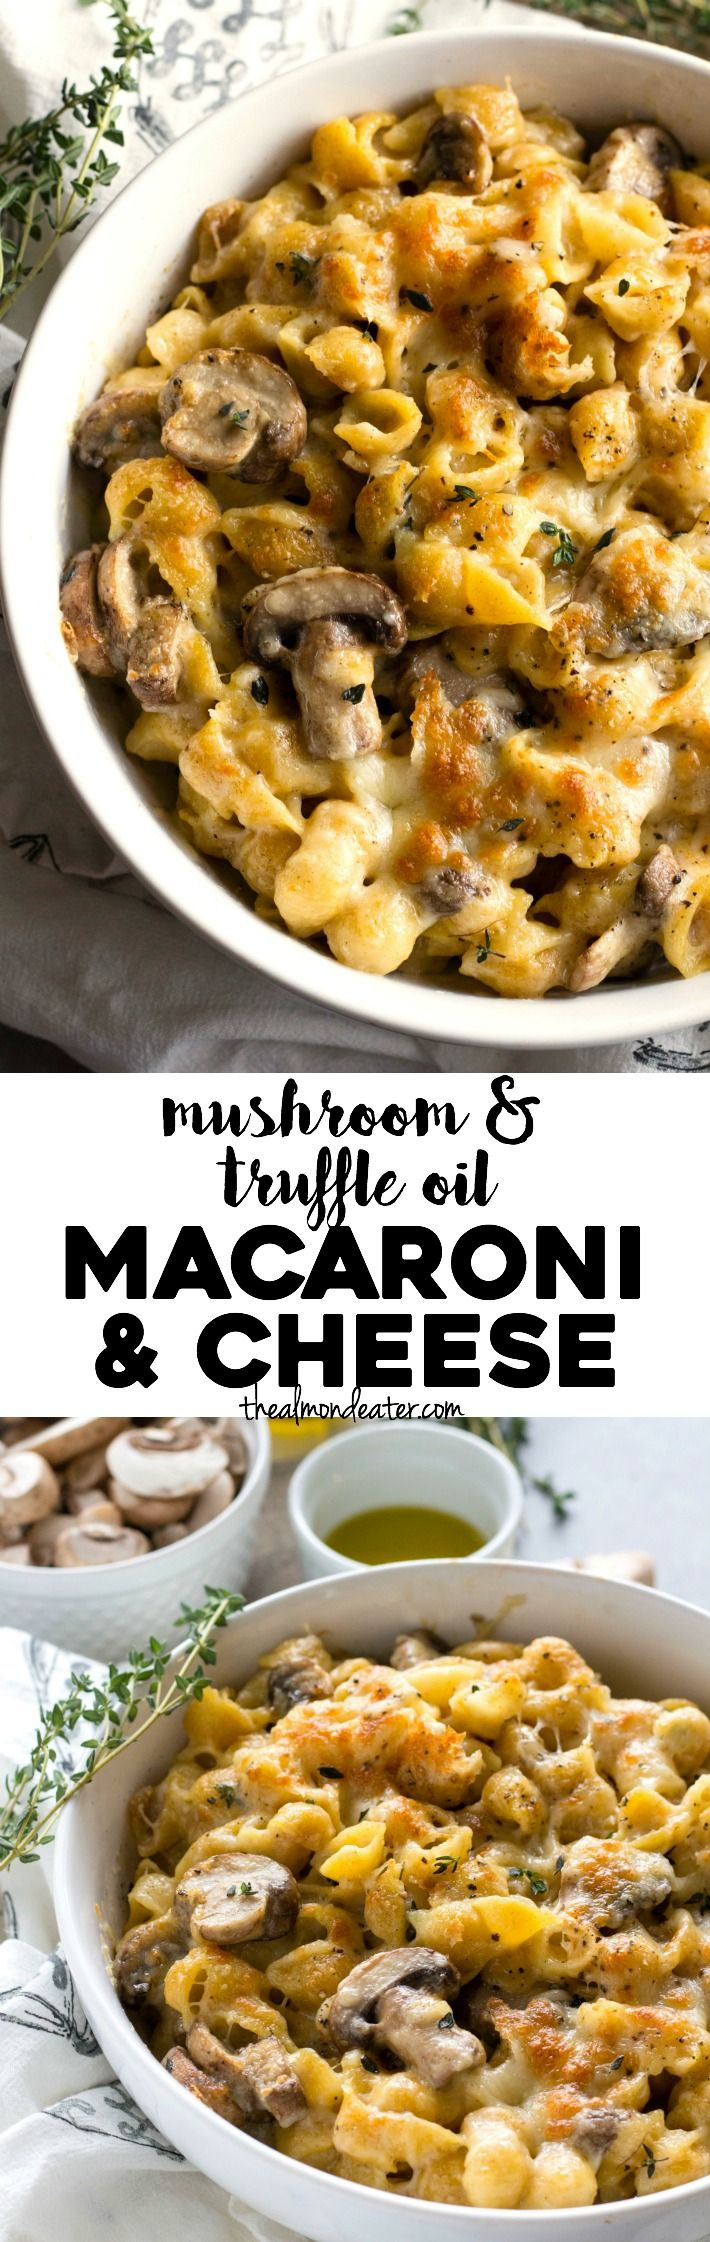 30 minutes and one skillet, this mac and cheese is filled with mushrooms, parmesan cheese and truffle oil. A quick dinner for all cheese lovers!